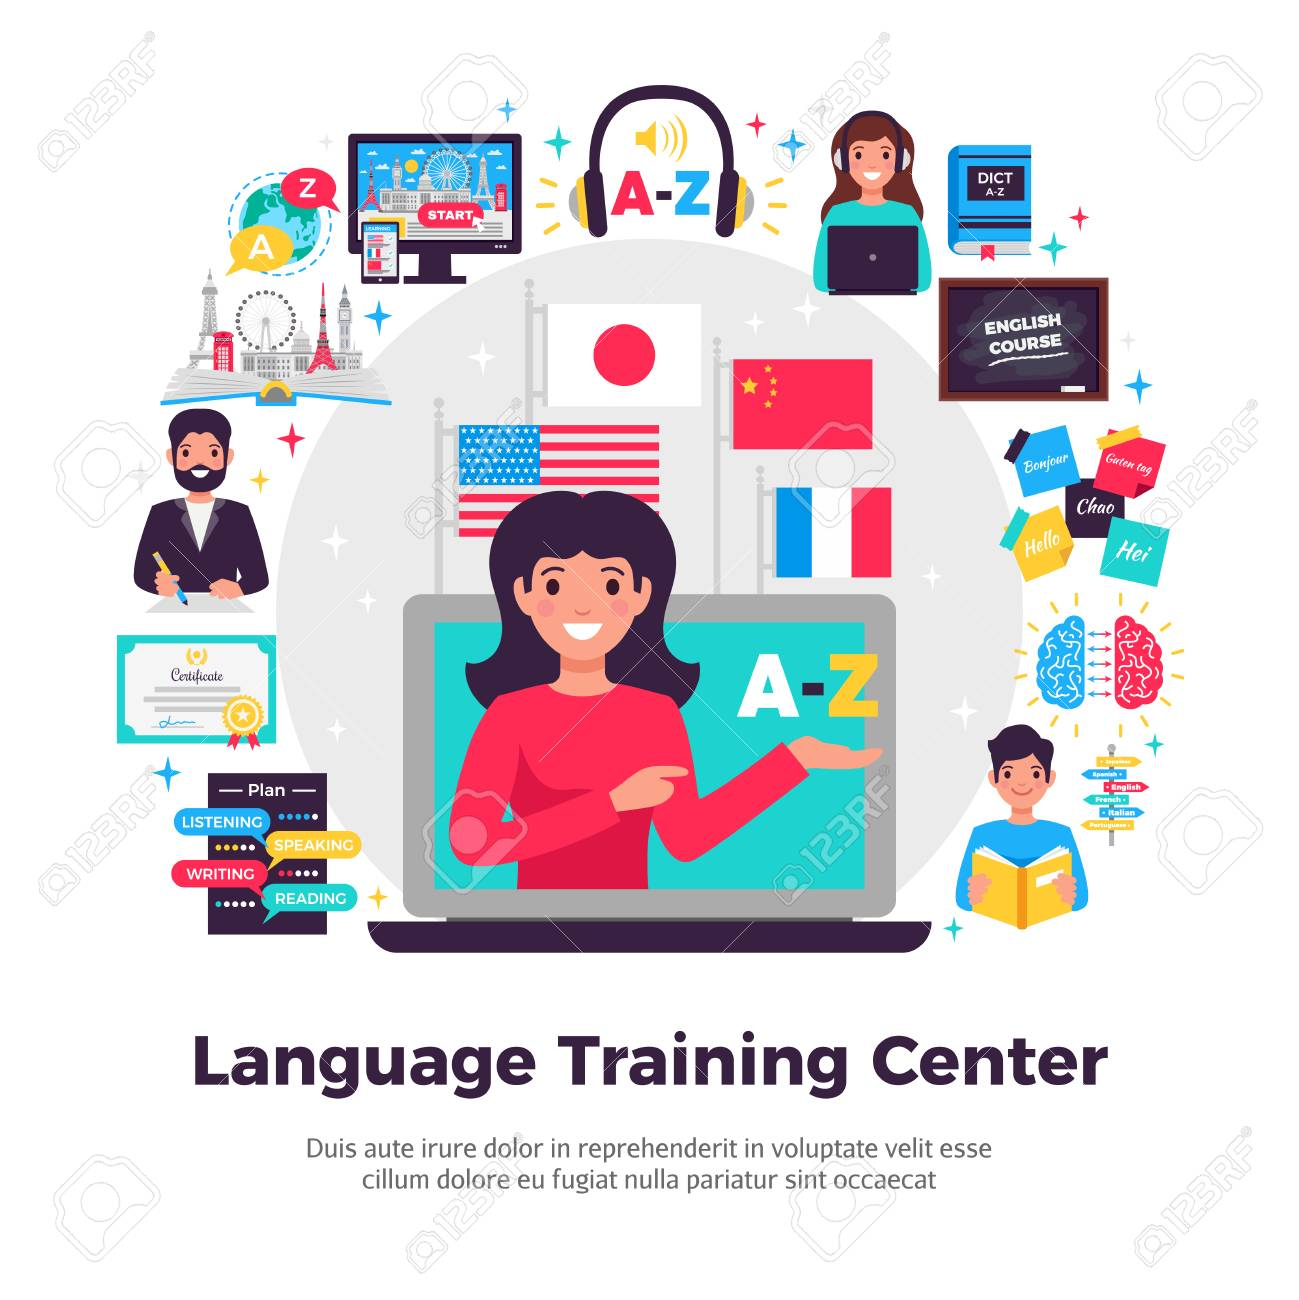 Foreign language training center advertisement flat composition with tutor online learning programs methods symbols apps vector illustration - 106198693